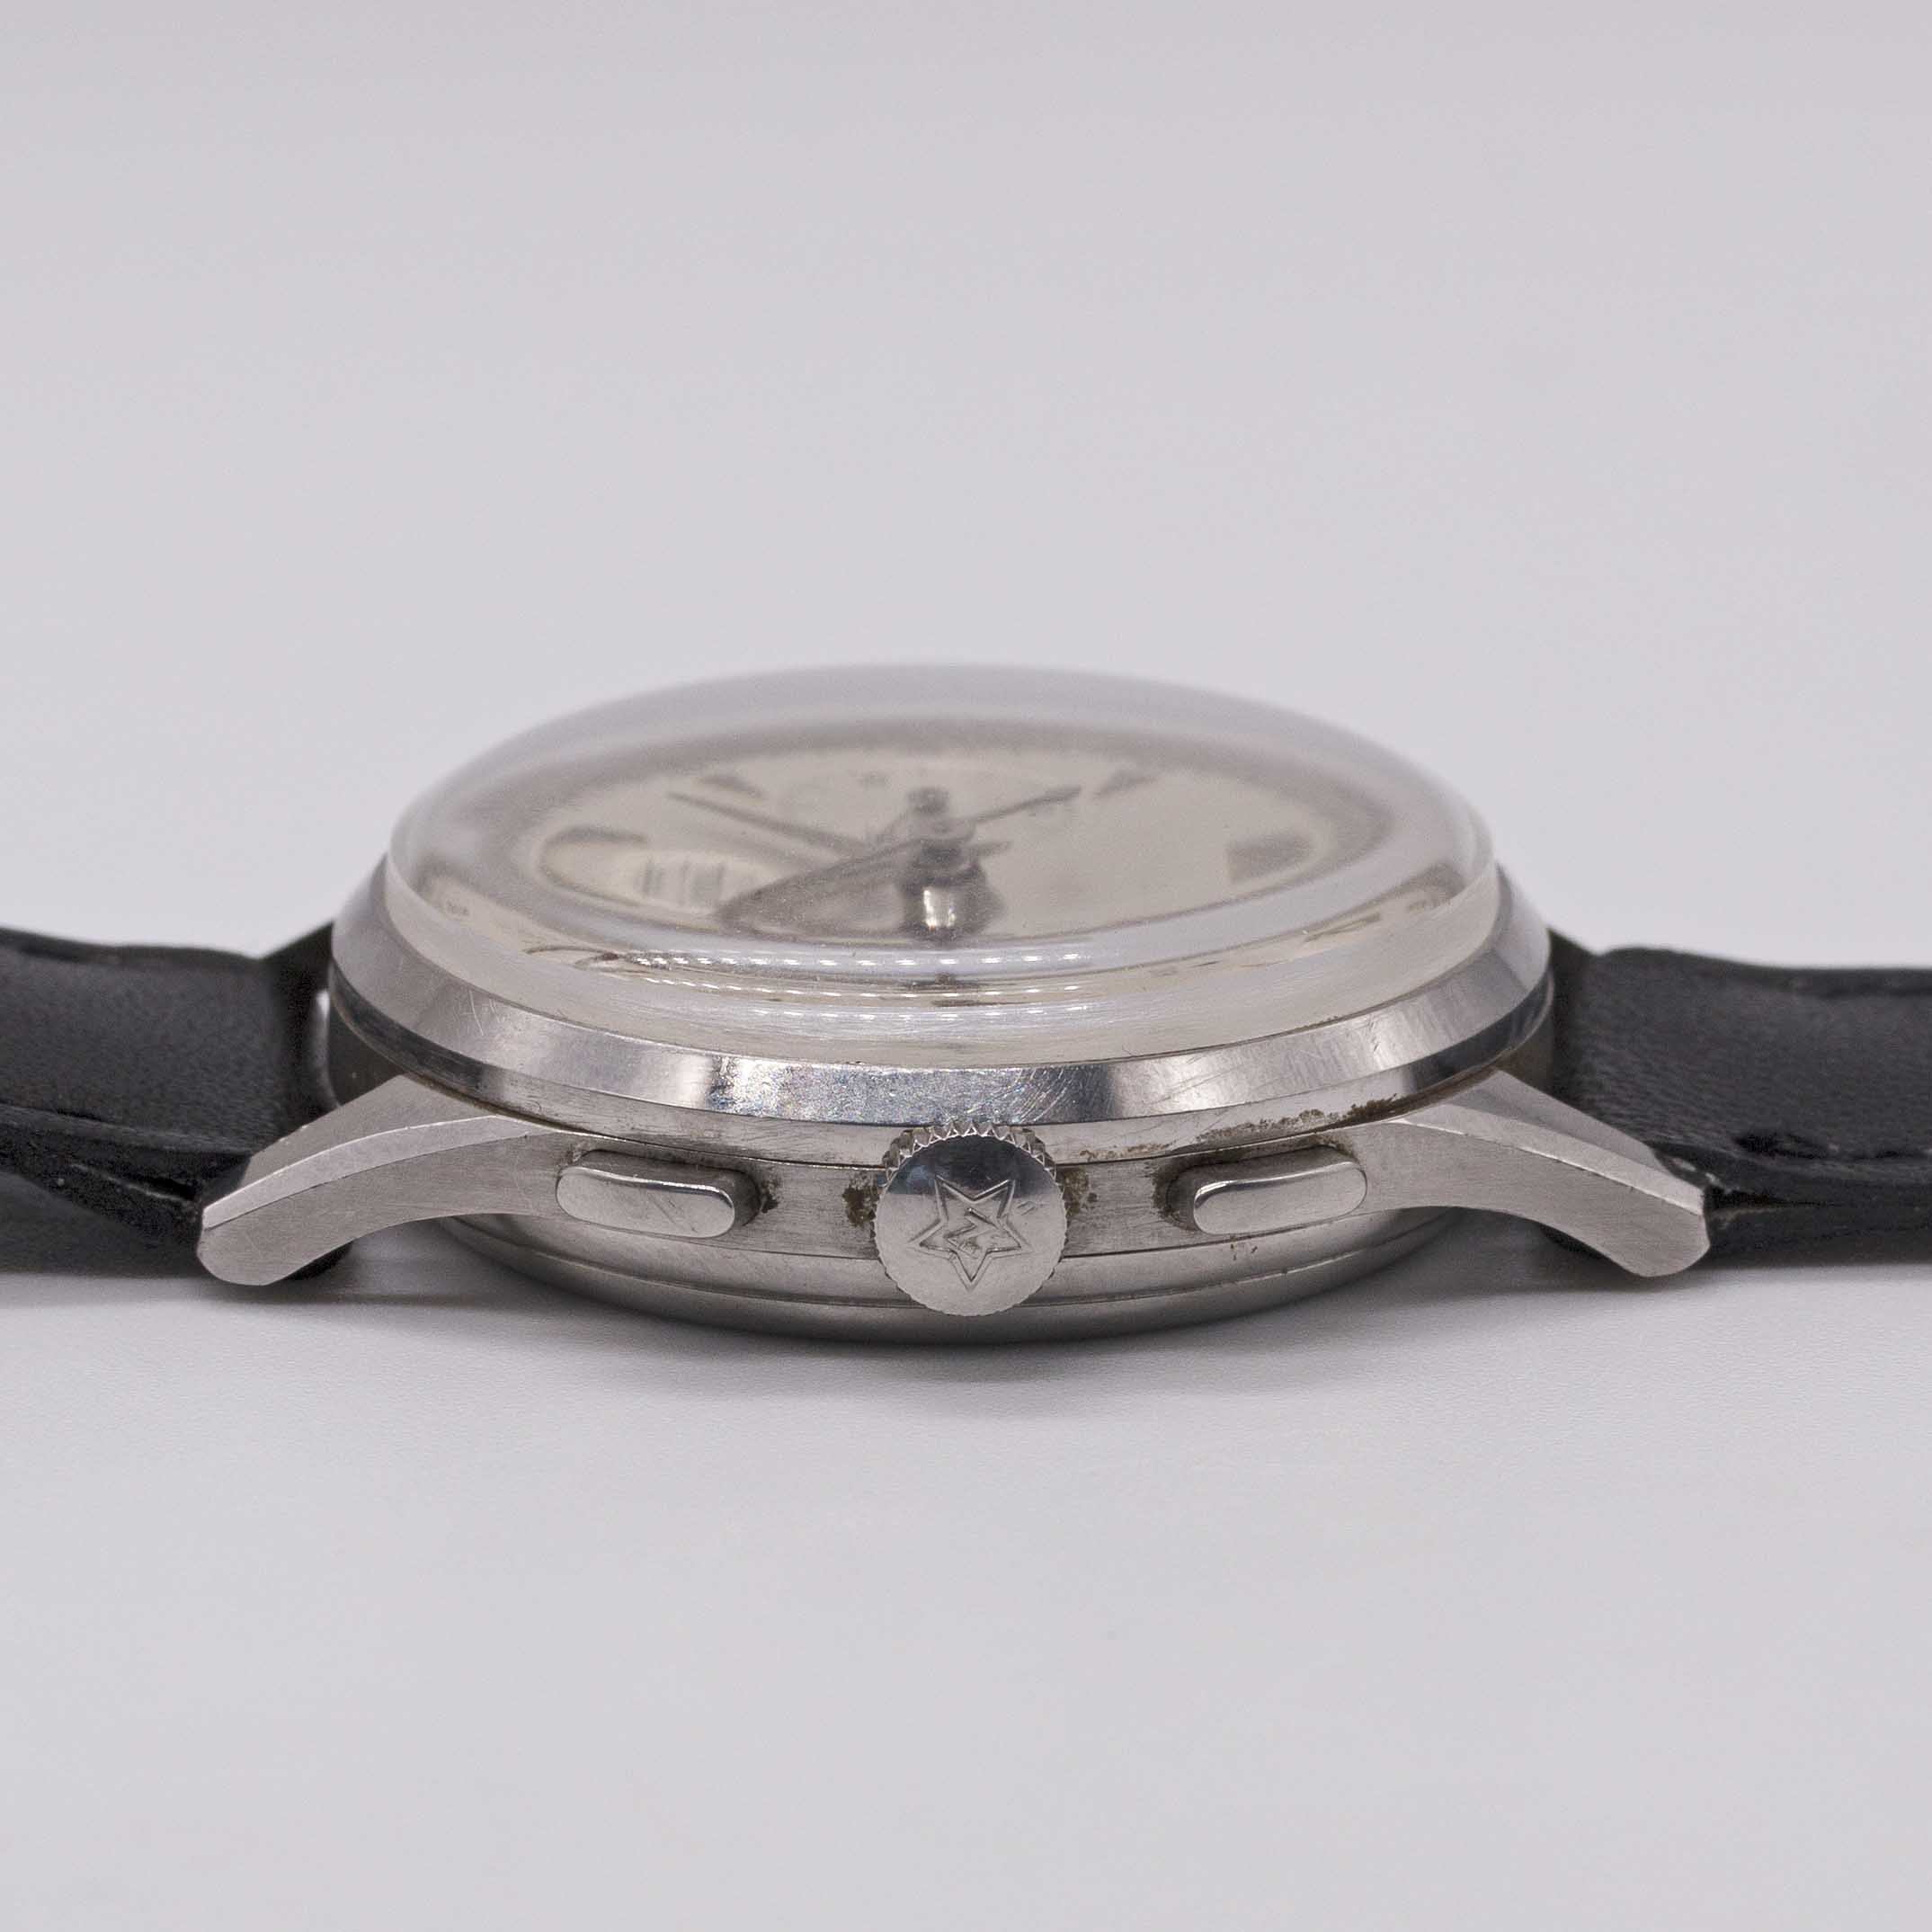 Lot 3 - A GENTLEMAN'S STAINLESS STEEL ZENITH CHRONOGRAPH WRIST WATCH CIRCA 1960, WITH CAL. 156H MOVEMENT